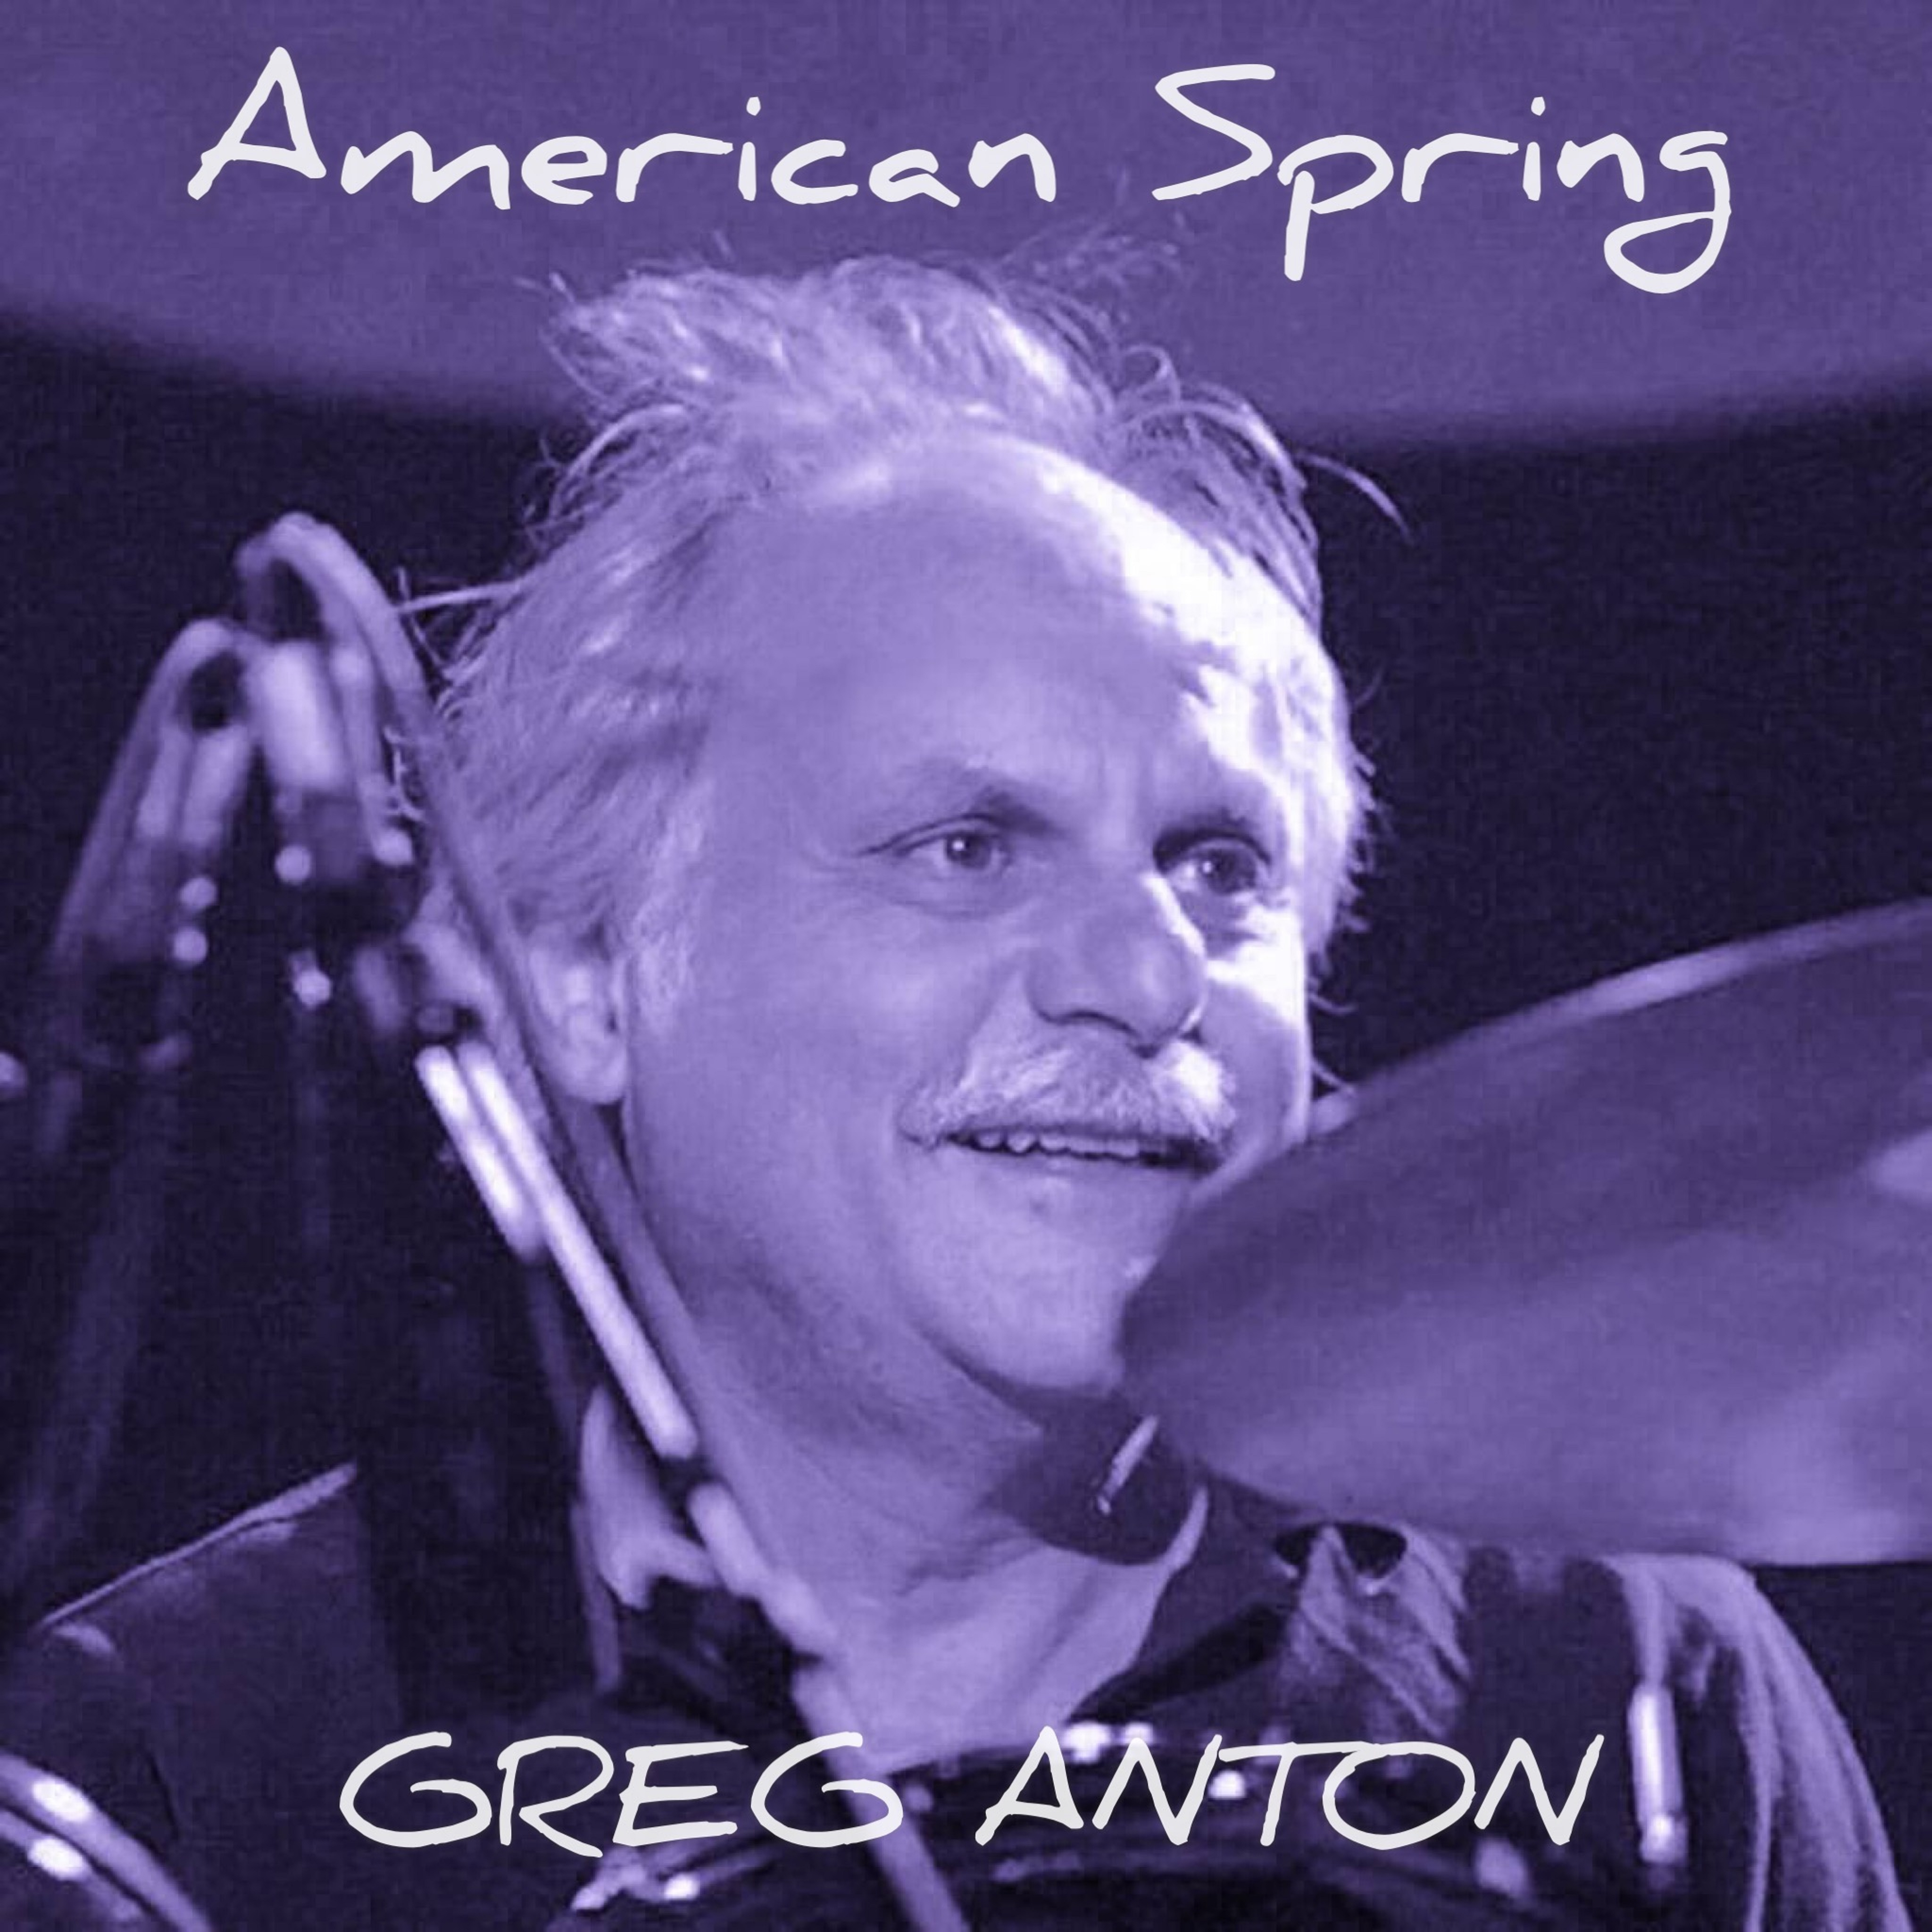 'AMERICAN SPRING' Words by Grateful Dead Lyricist Robert Hunter with Music by Greg Anton